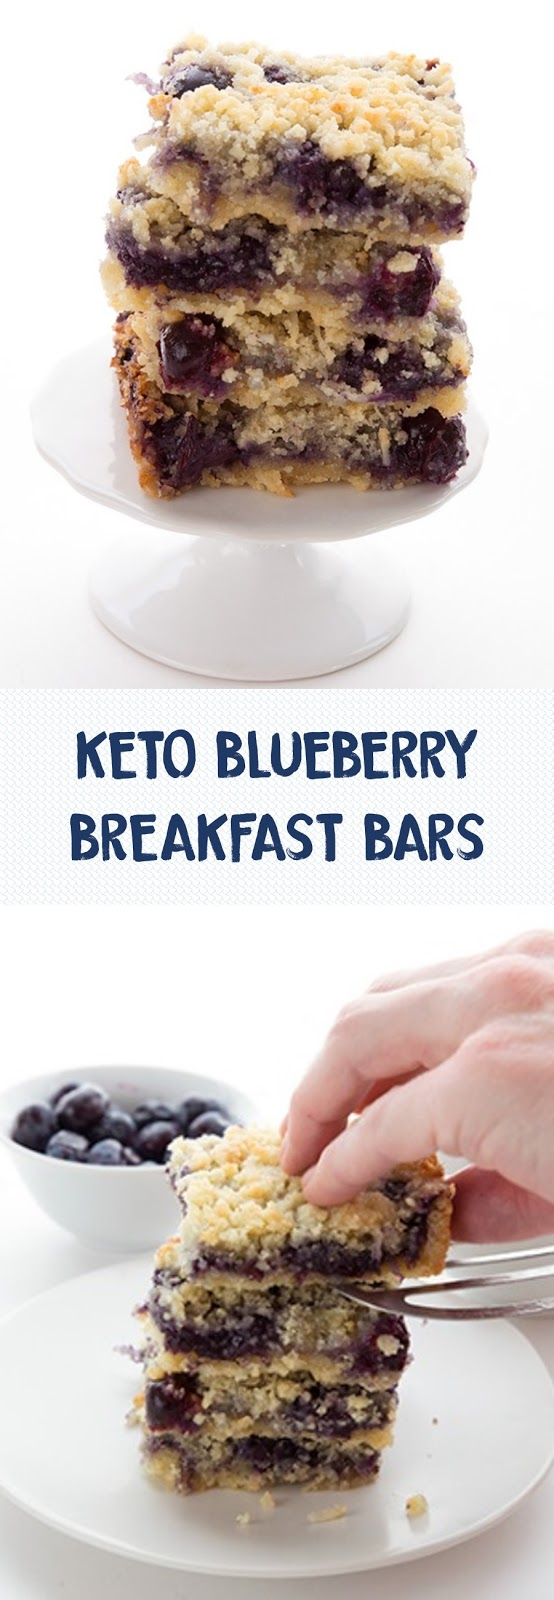 KETO BLUEBERRY BREAKFAST BARS